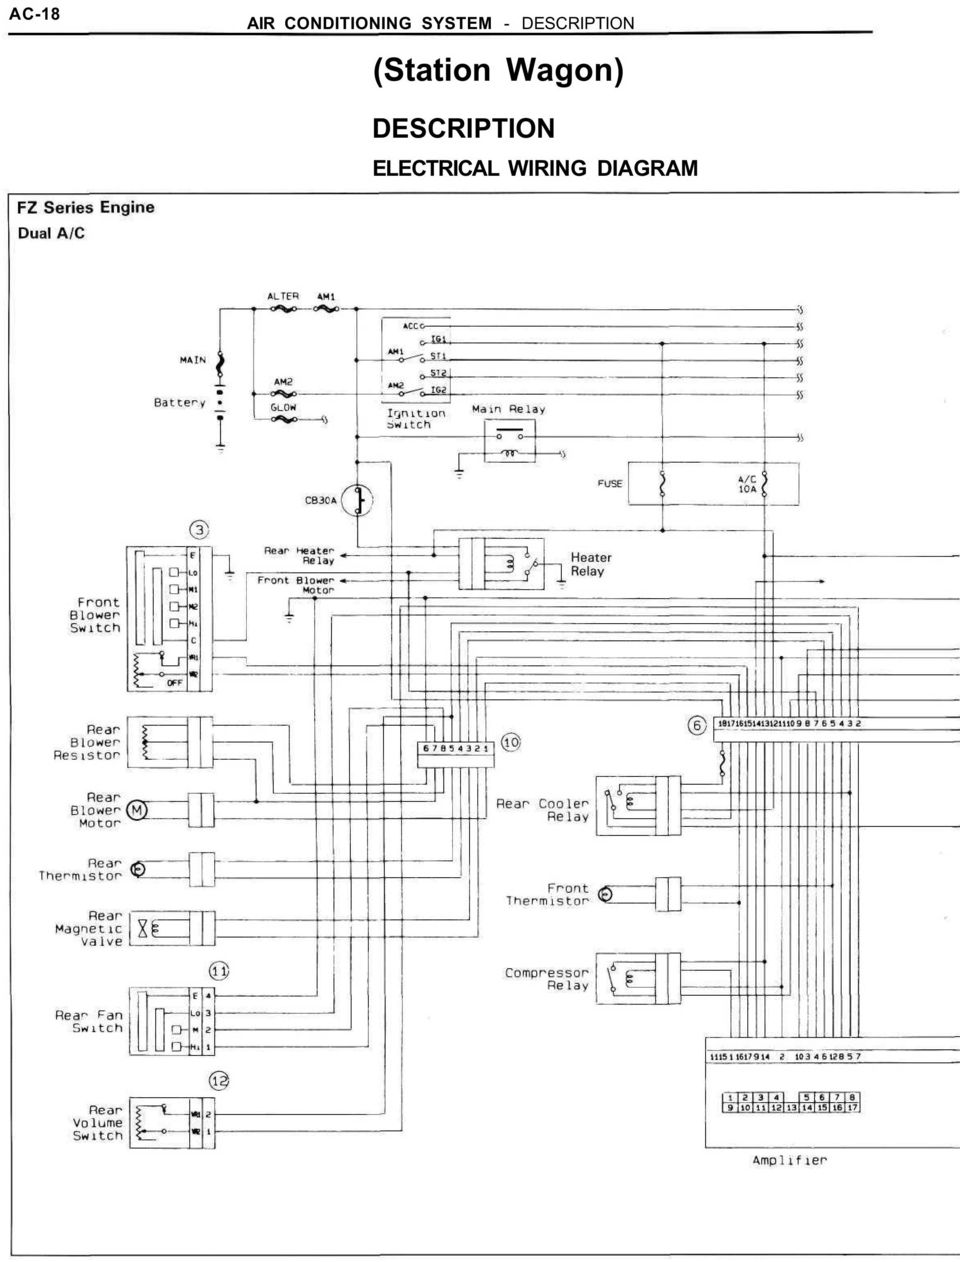 Air Conditioning System Pdf Conditioner Schematic Wiring Diagram Swift Gti Station Wagon